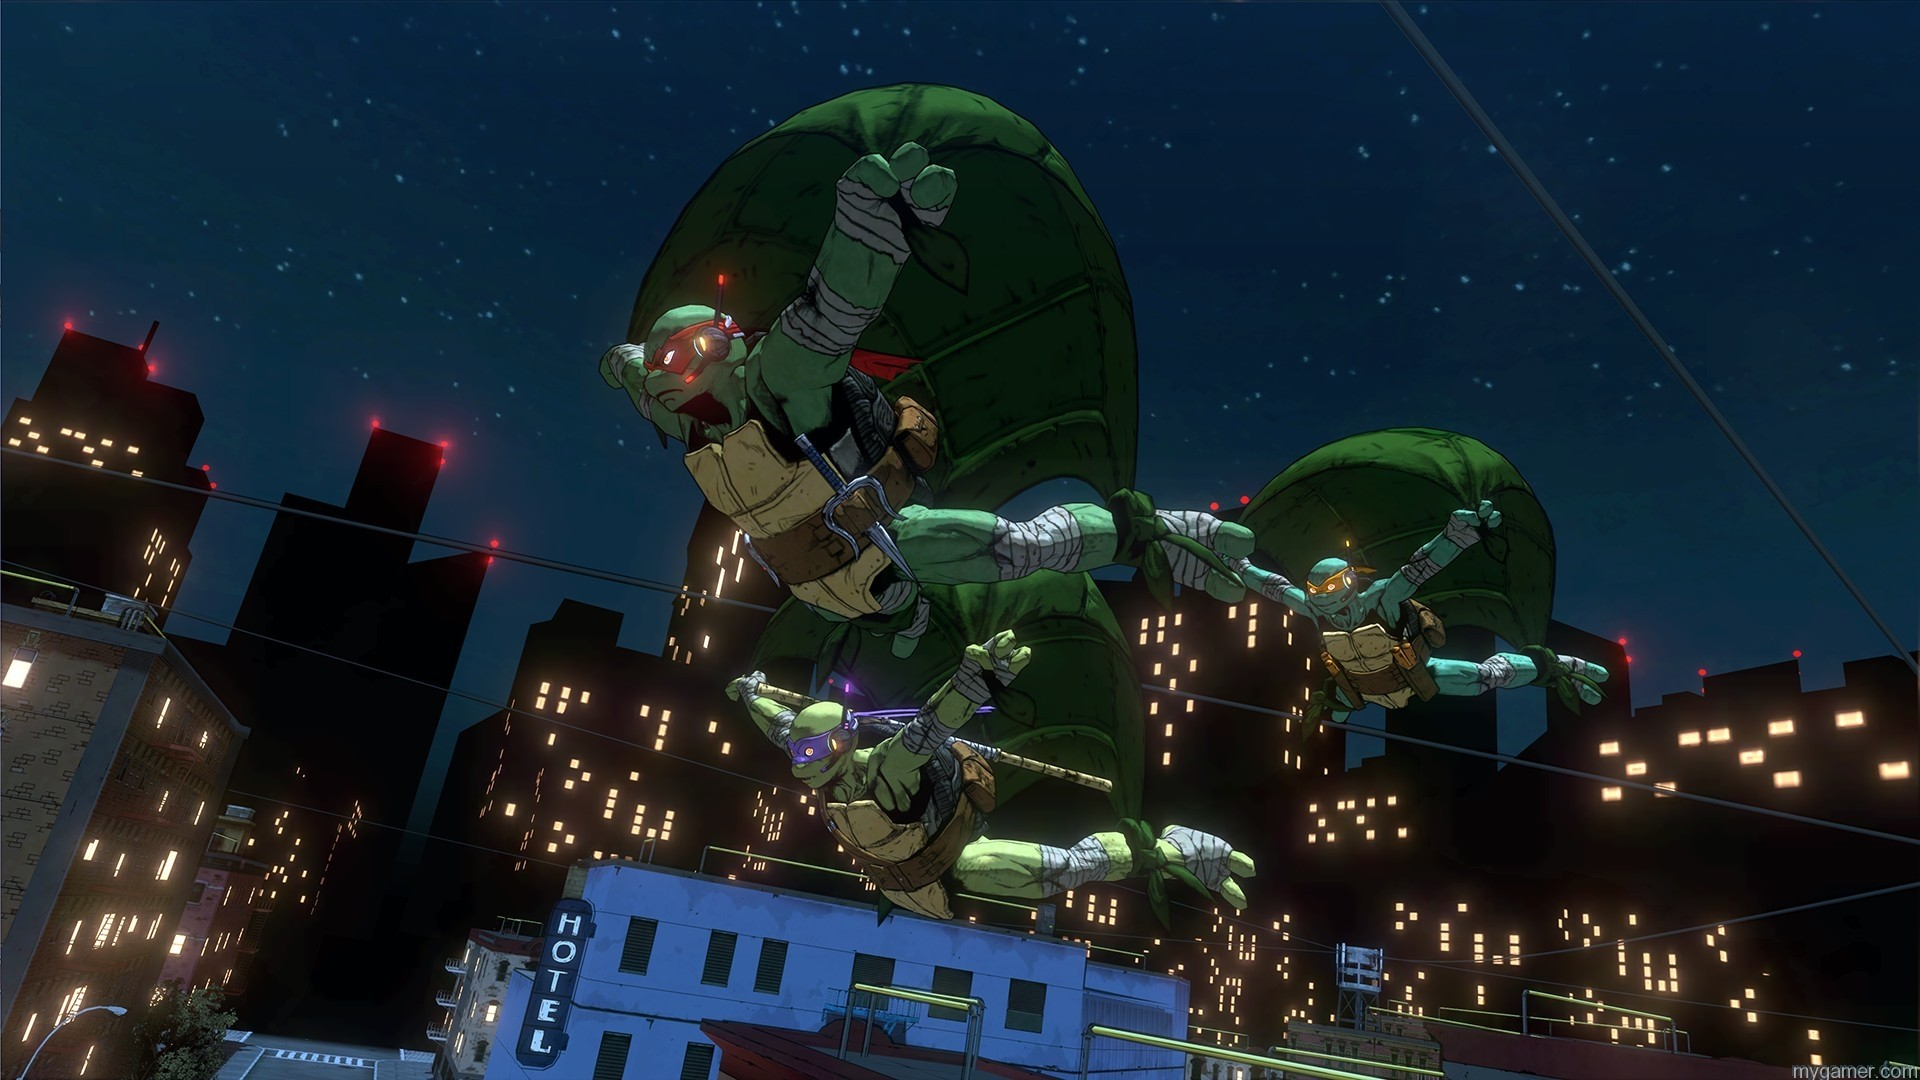 TMNT - MiM Screens 05 TMNT: Mutants In Manhattan Now Available - Discounted on Last Gens TMNT: Mutants In Manhattan Now Available - Discounted on Last Gens TMNT MiM Screens 05